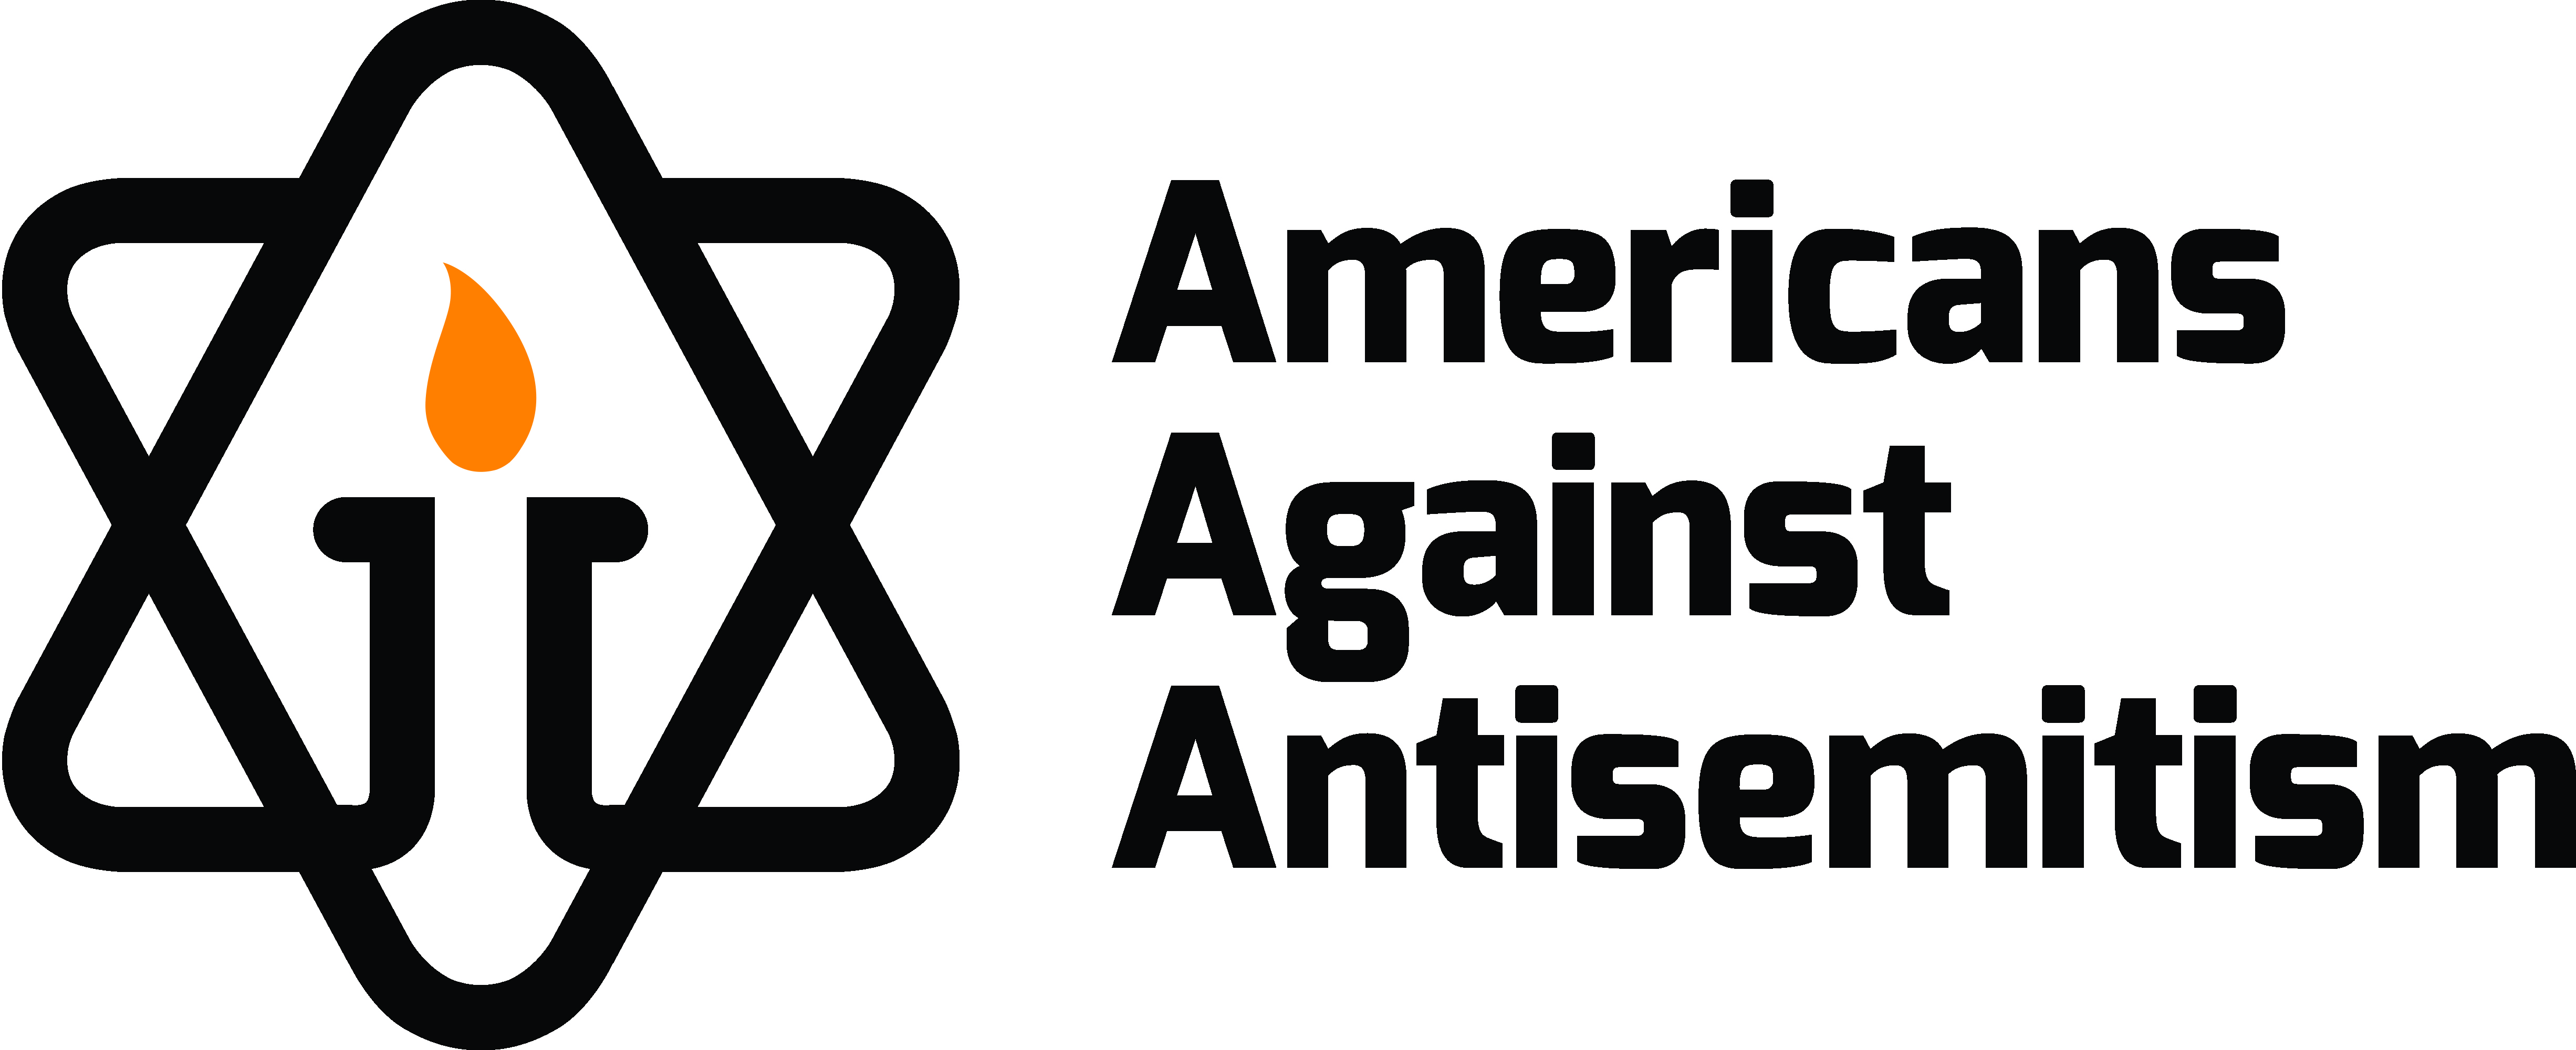 Americans Against Antisemitism